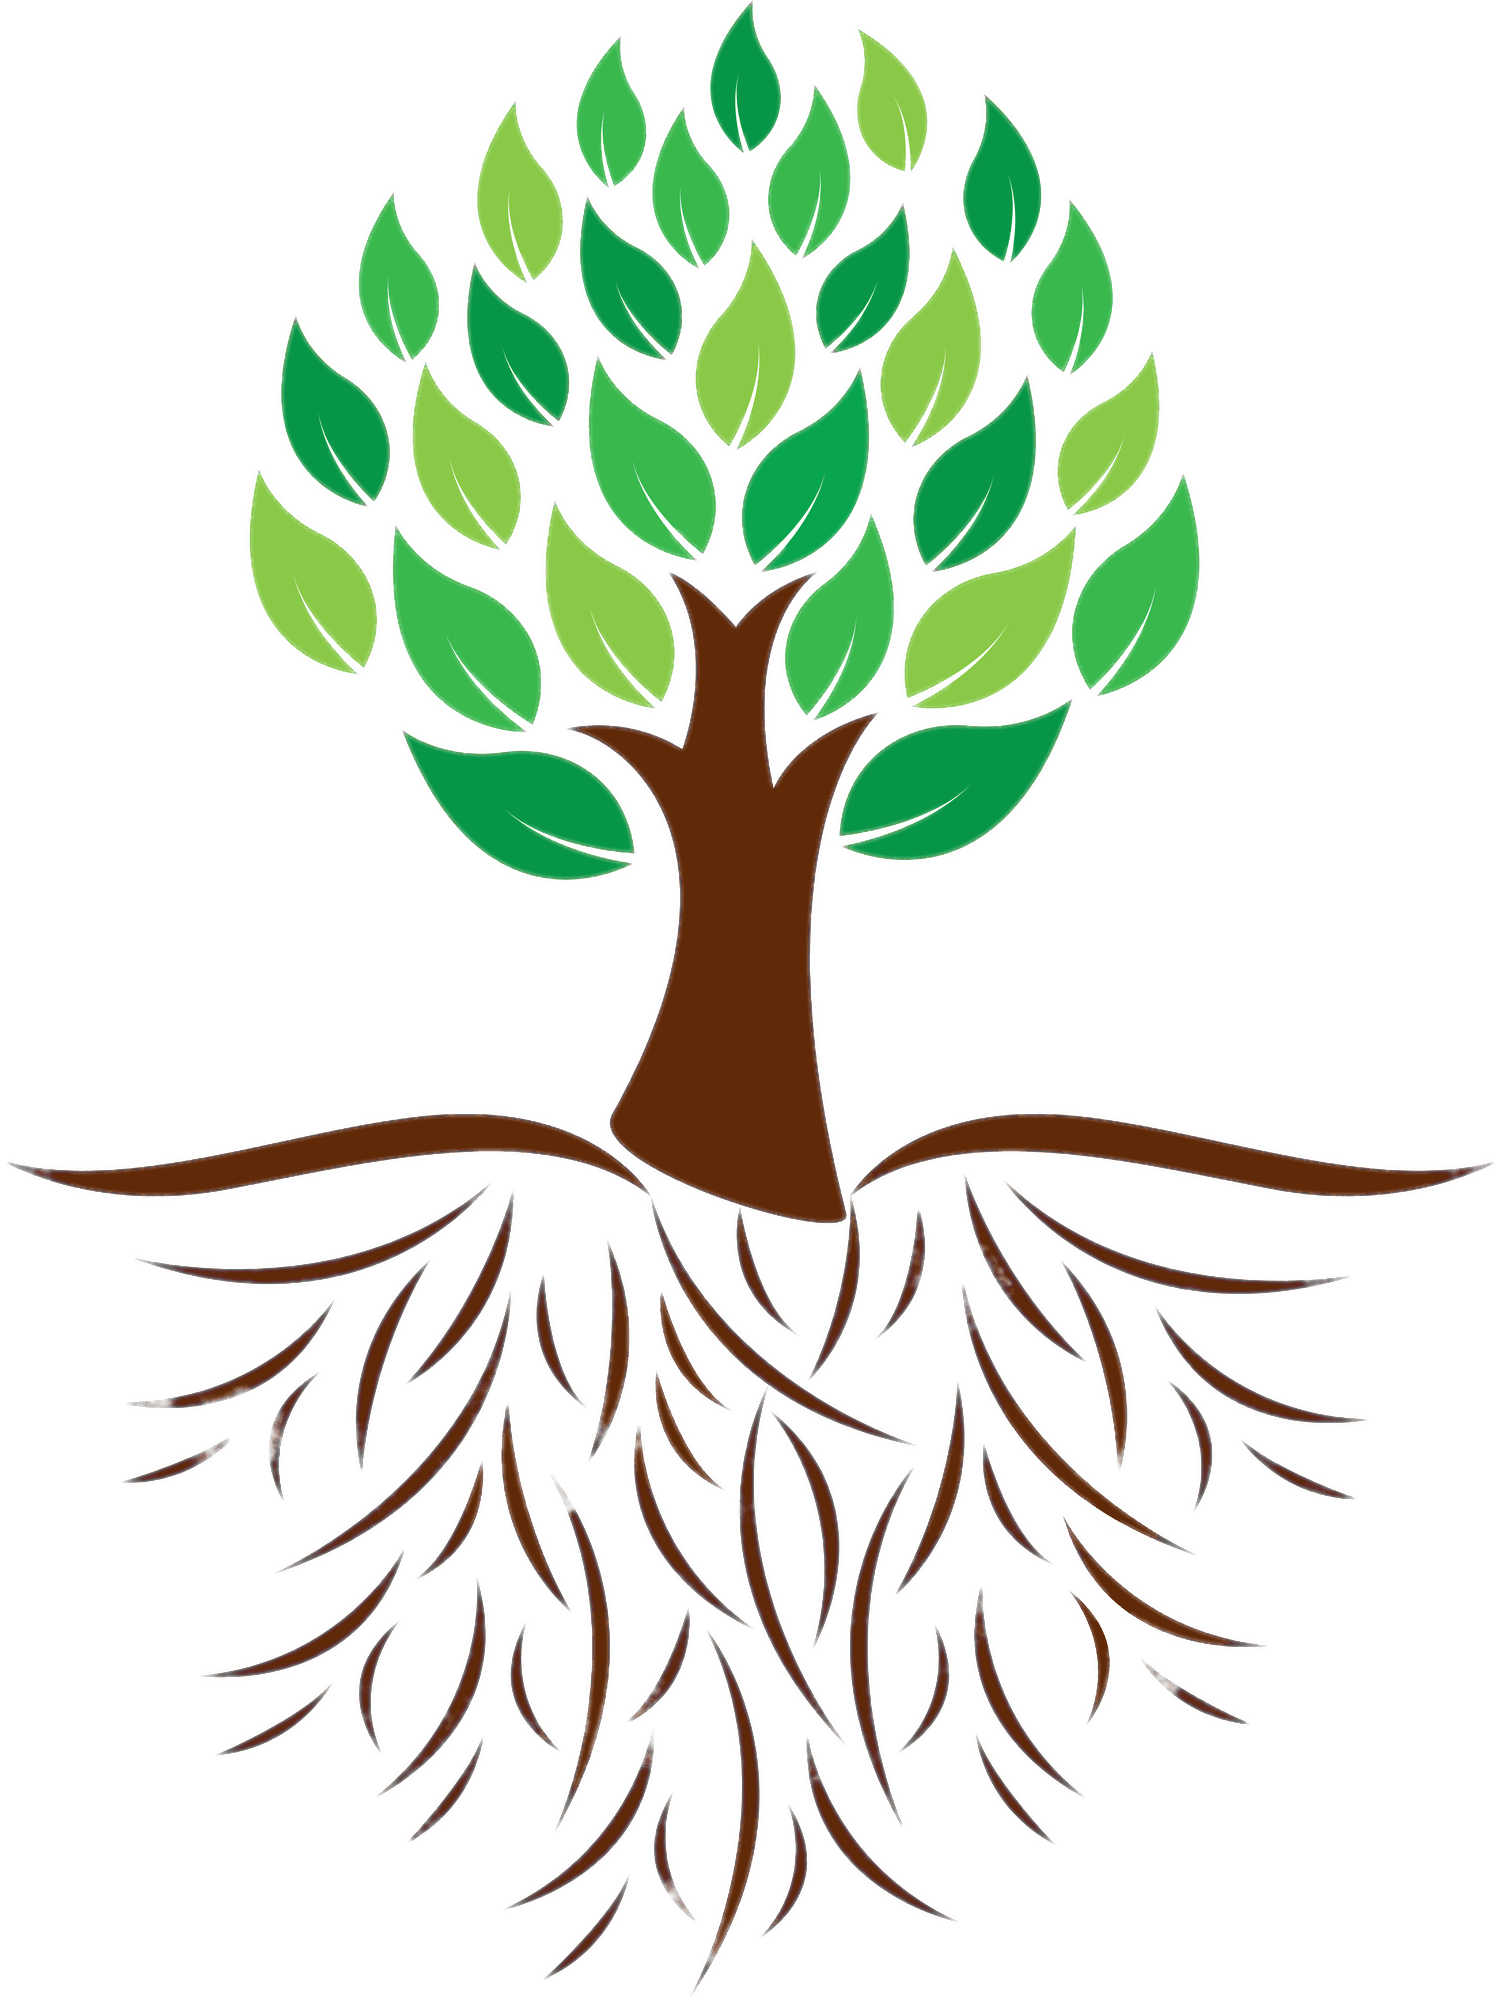 Tree And Roots Colour Illustration Transparent Png Stickpng